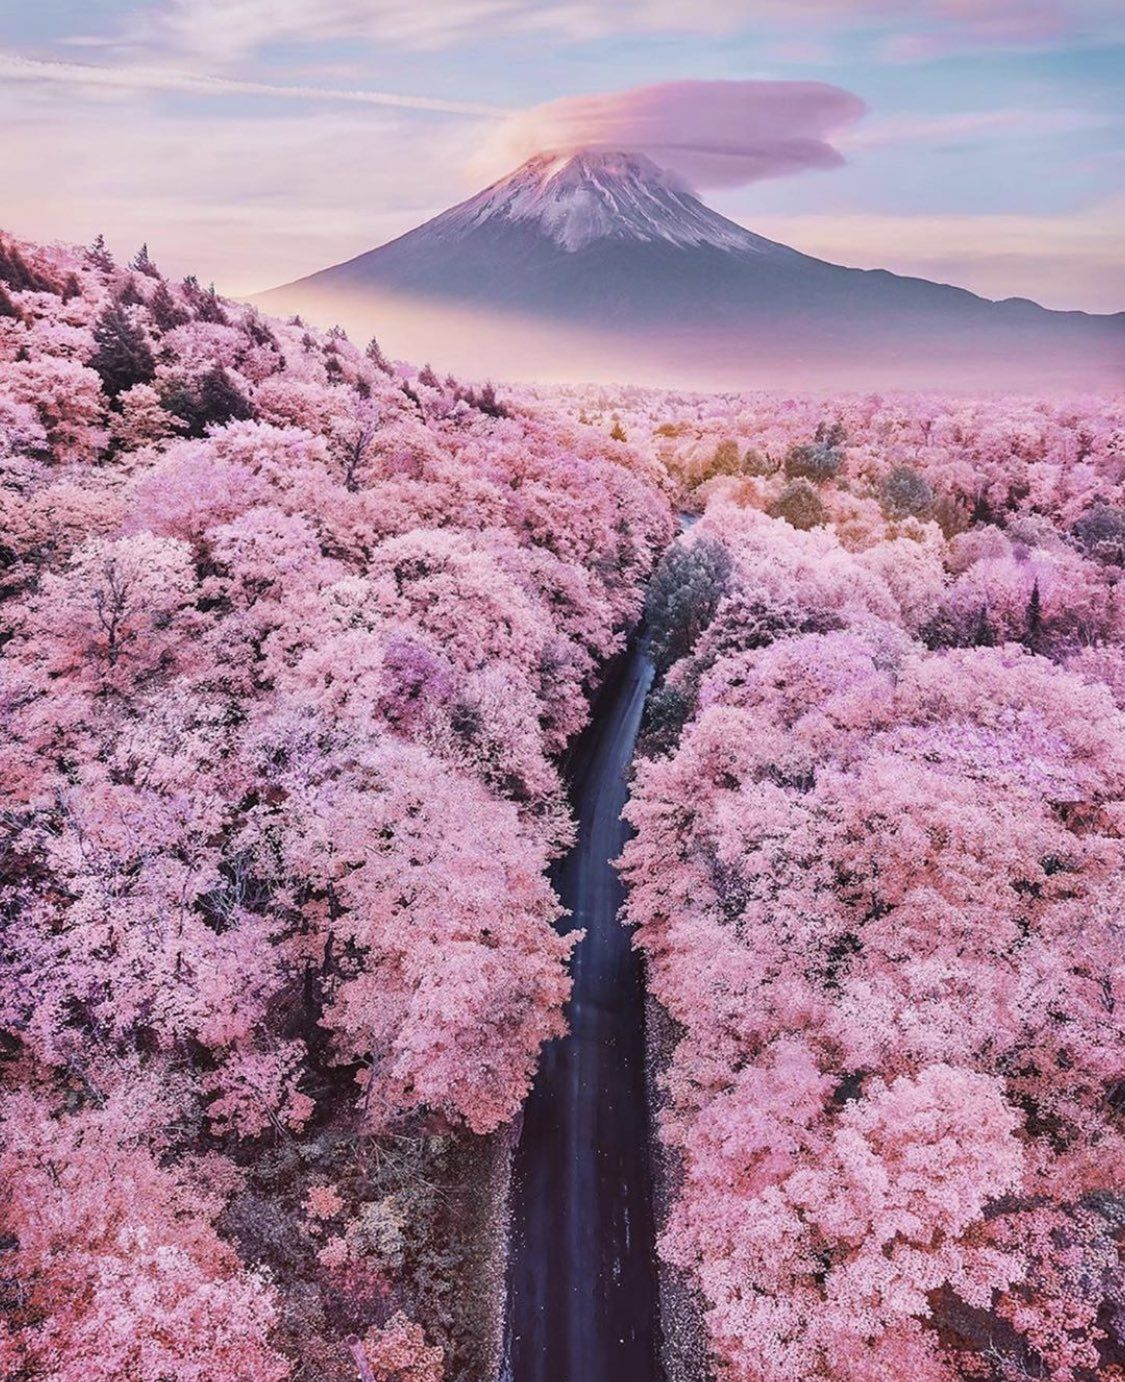 Justtravel On Twitter Cherry Blossom Japan Mount Fuji Beautiful Places